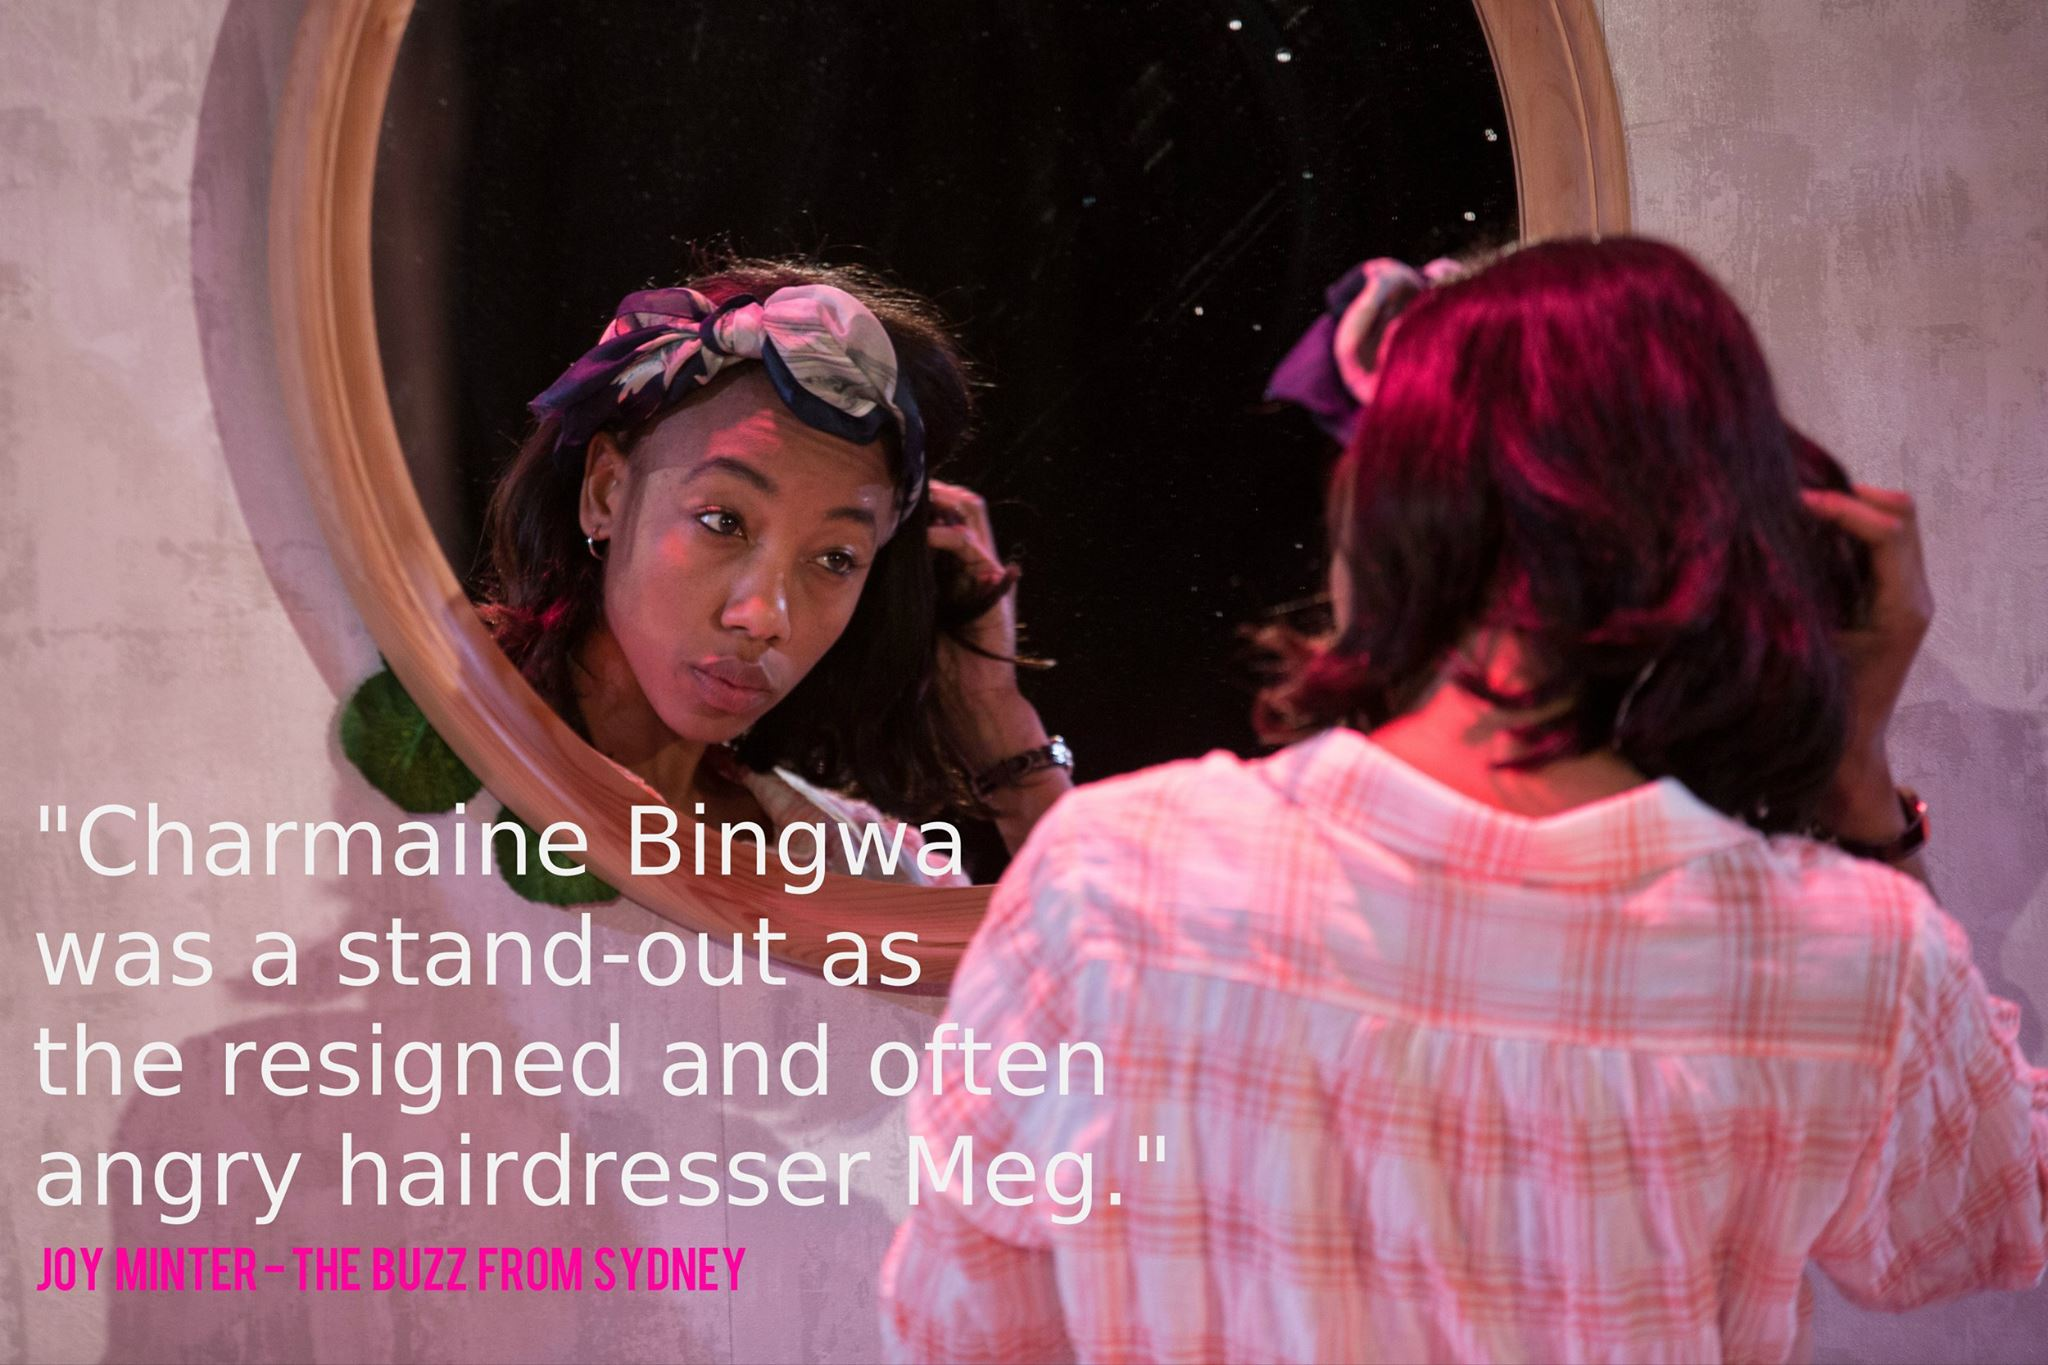 Meg (Charmaine Bingwa) - Joy Minter quote.jpg